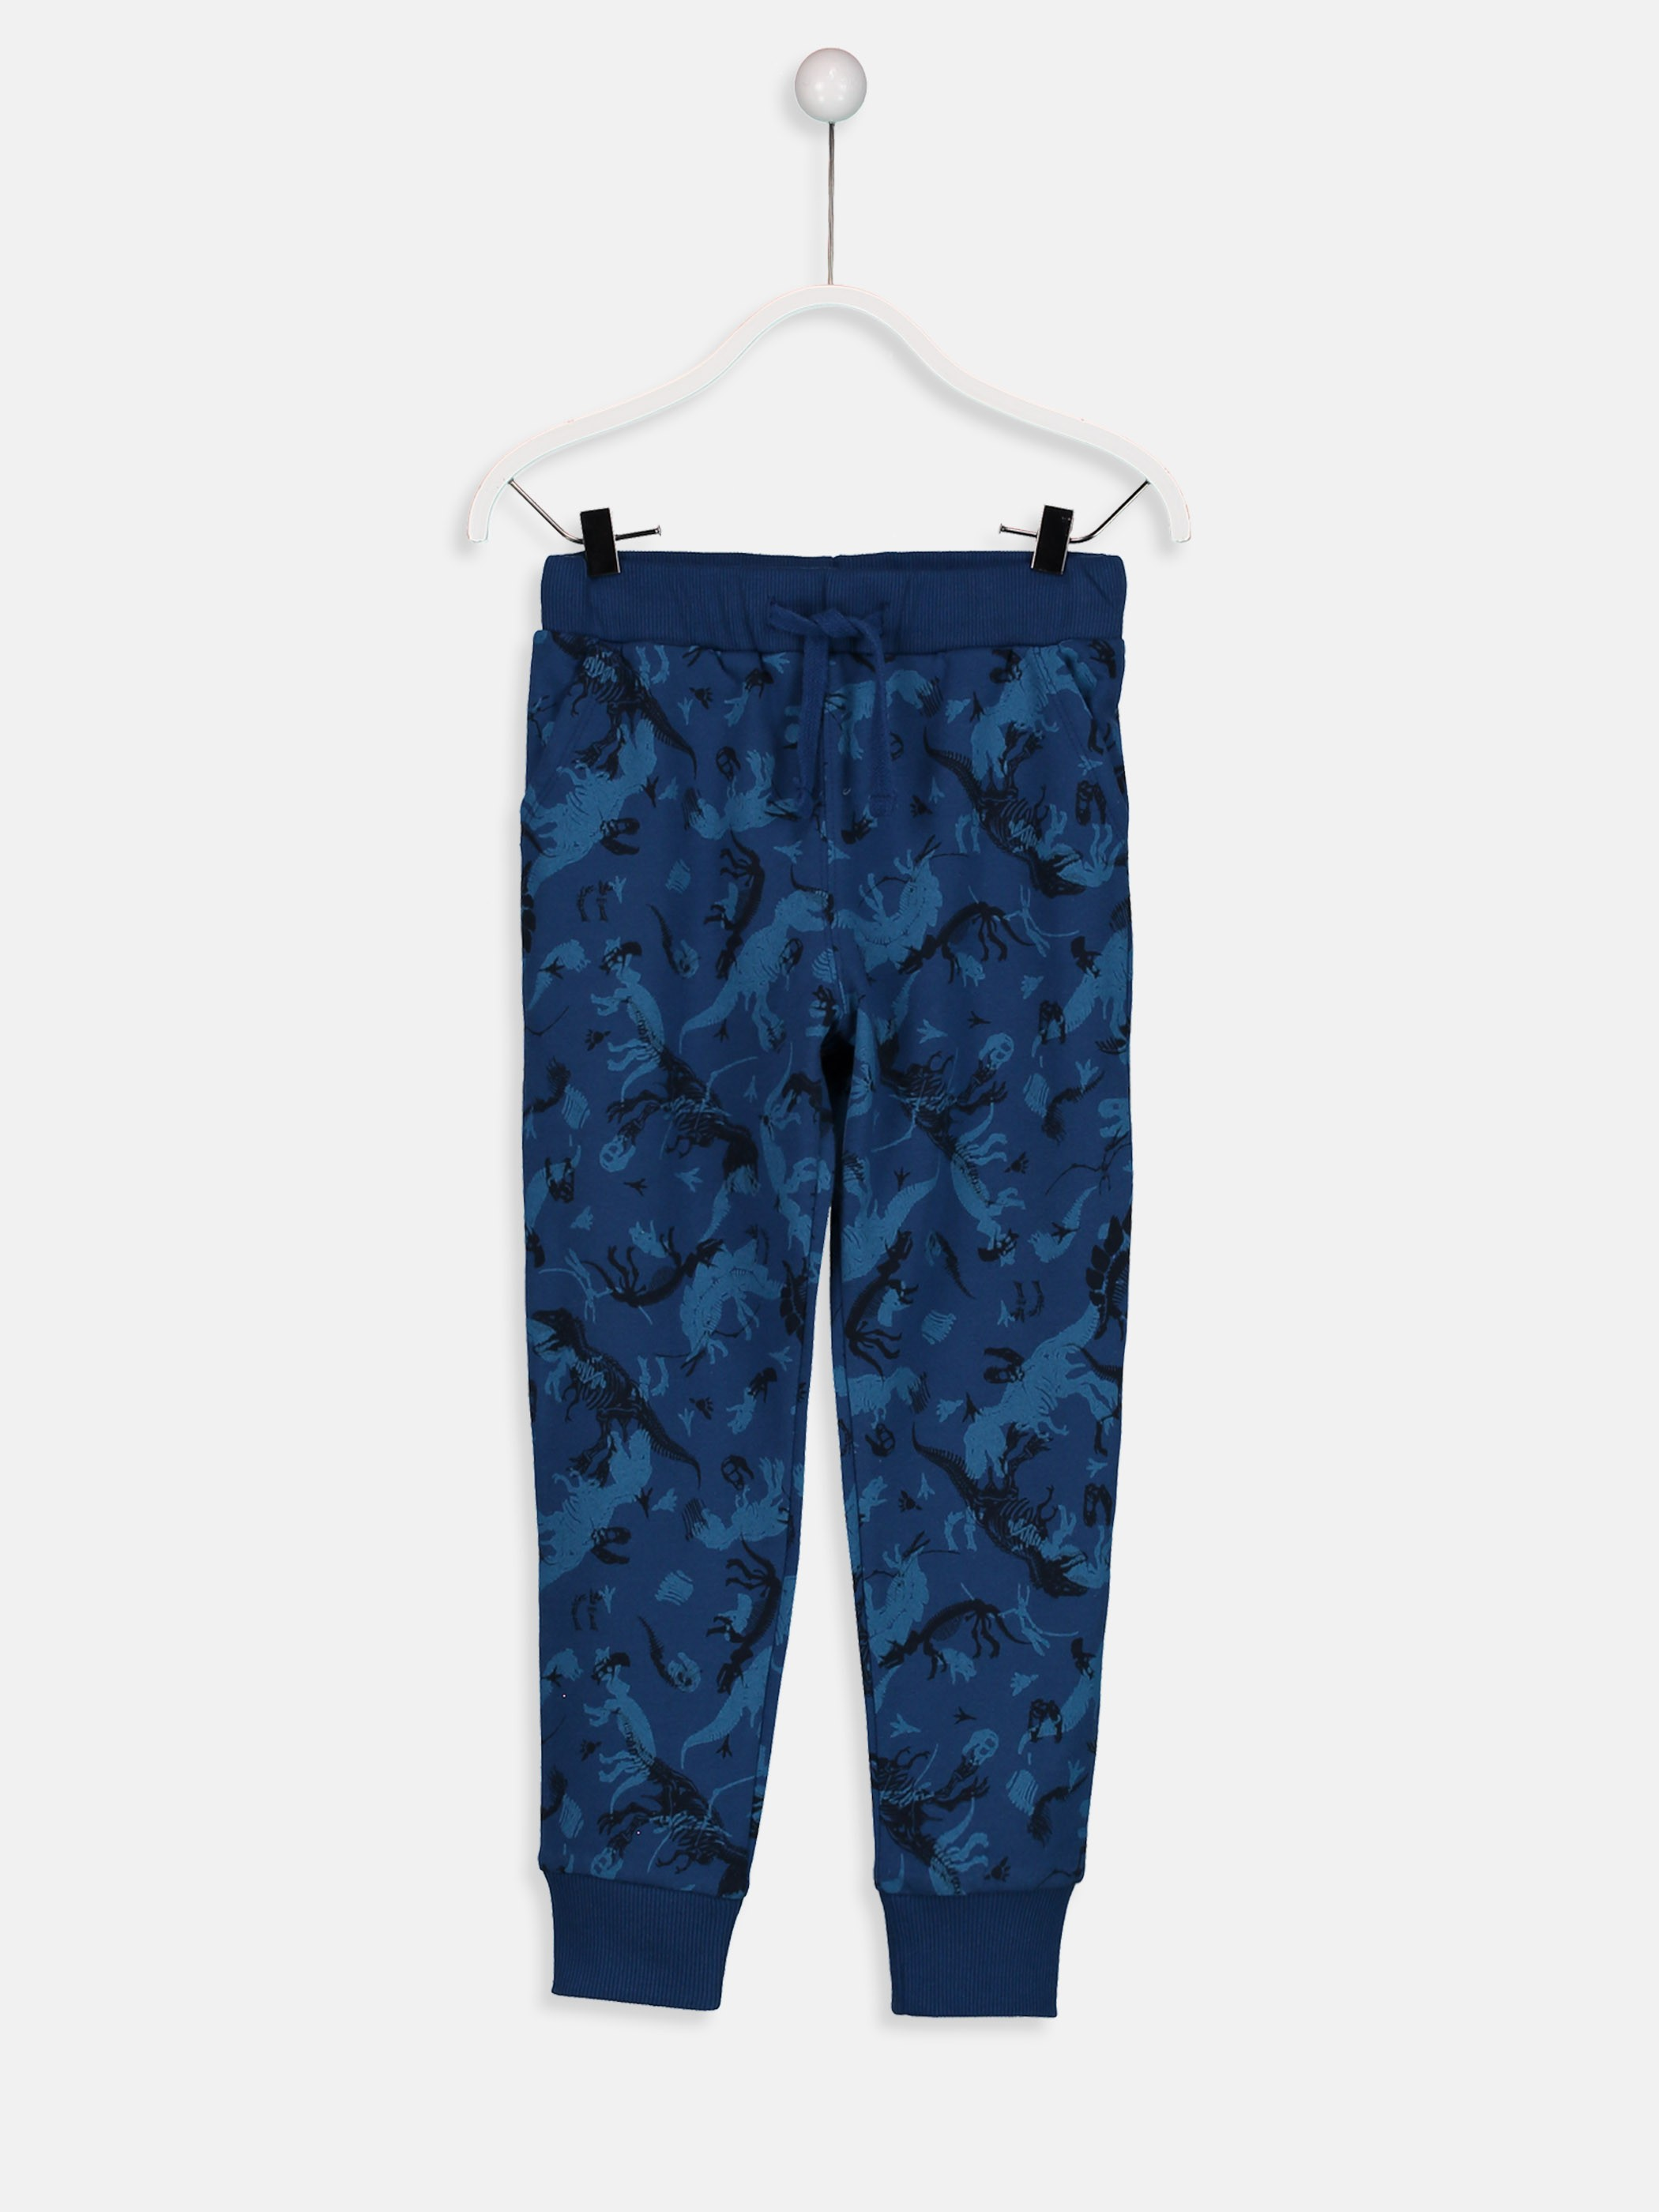 NAVY - Sweatpants - 8W7295Z4